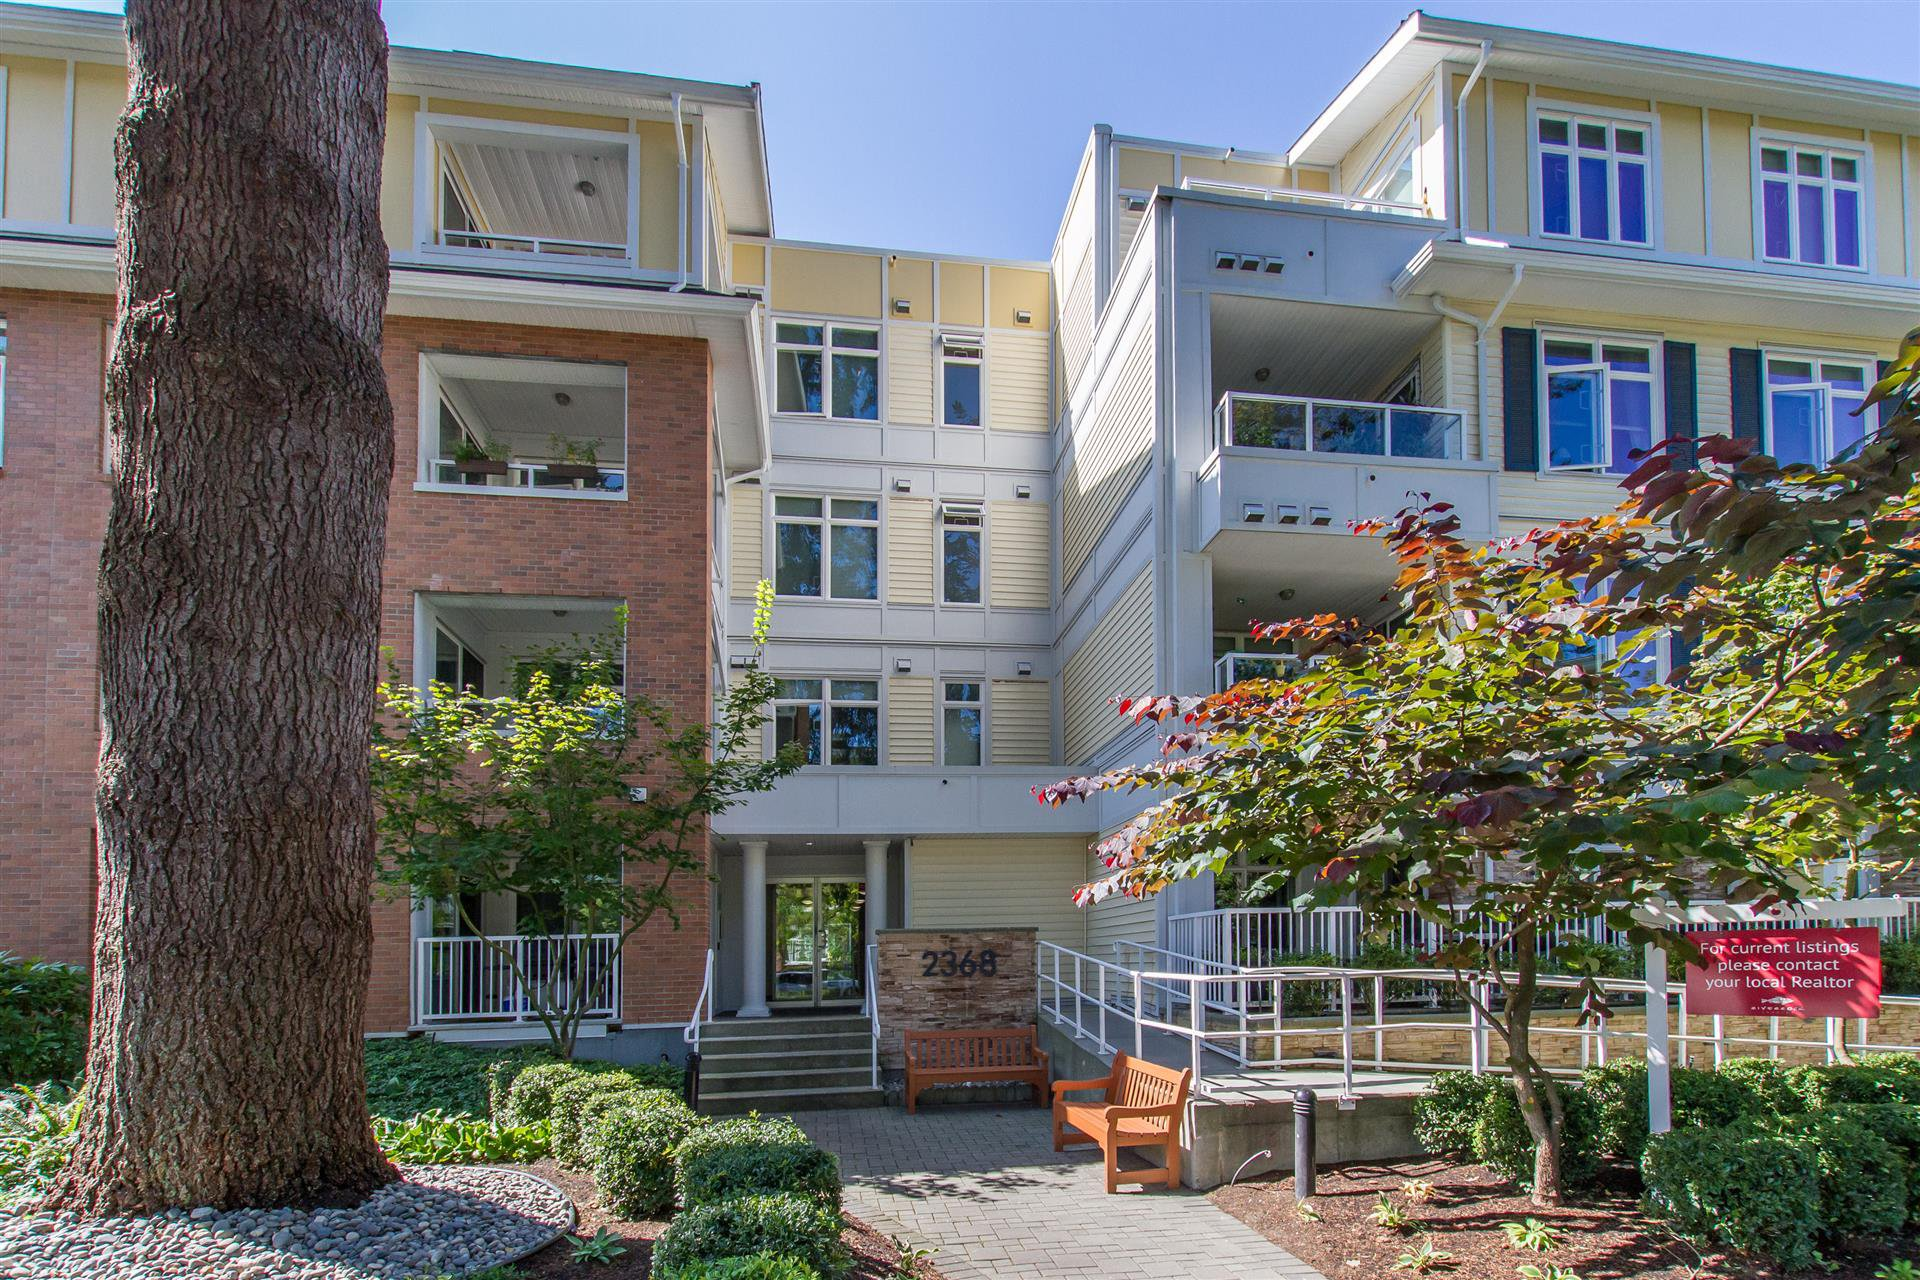 Main Photo: 118 2368 Marpole Ave in Port Coquitlam: Central Pt Coquitlam Condo for sale : MLS®# R2441544